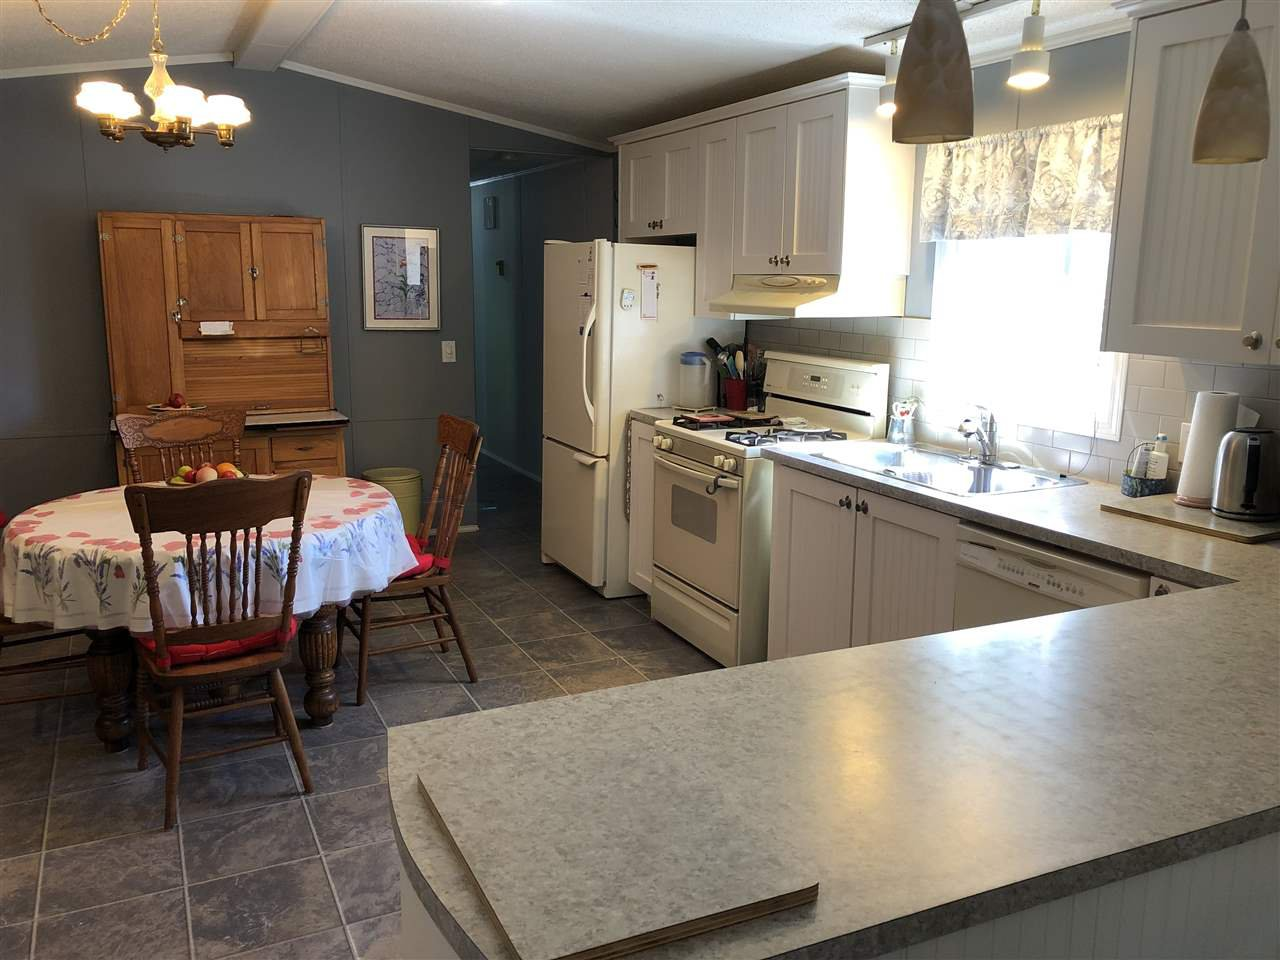 "Photo 11: Photos: 45 4116 BROWNING Road in Sechelt: Sechelt District Manufactured Home for sale in ""ROCKLAND WYND"" (Sunshine Coast)  : MLS®# R2472545"